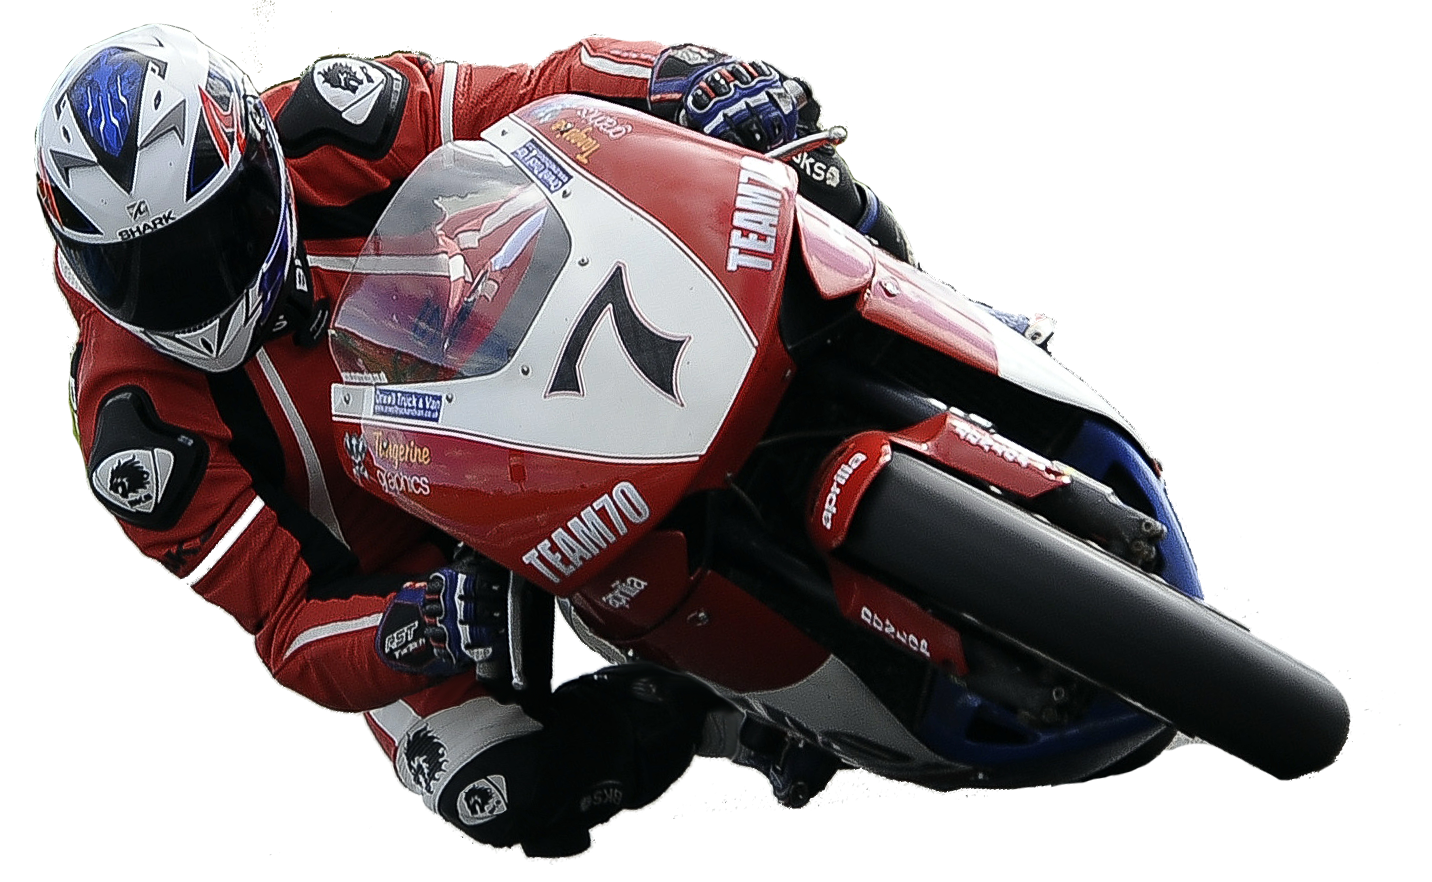 download racing motorbike transparent hq png image in different